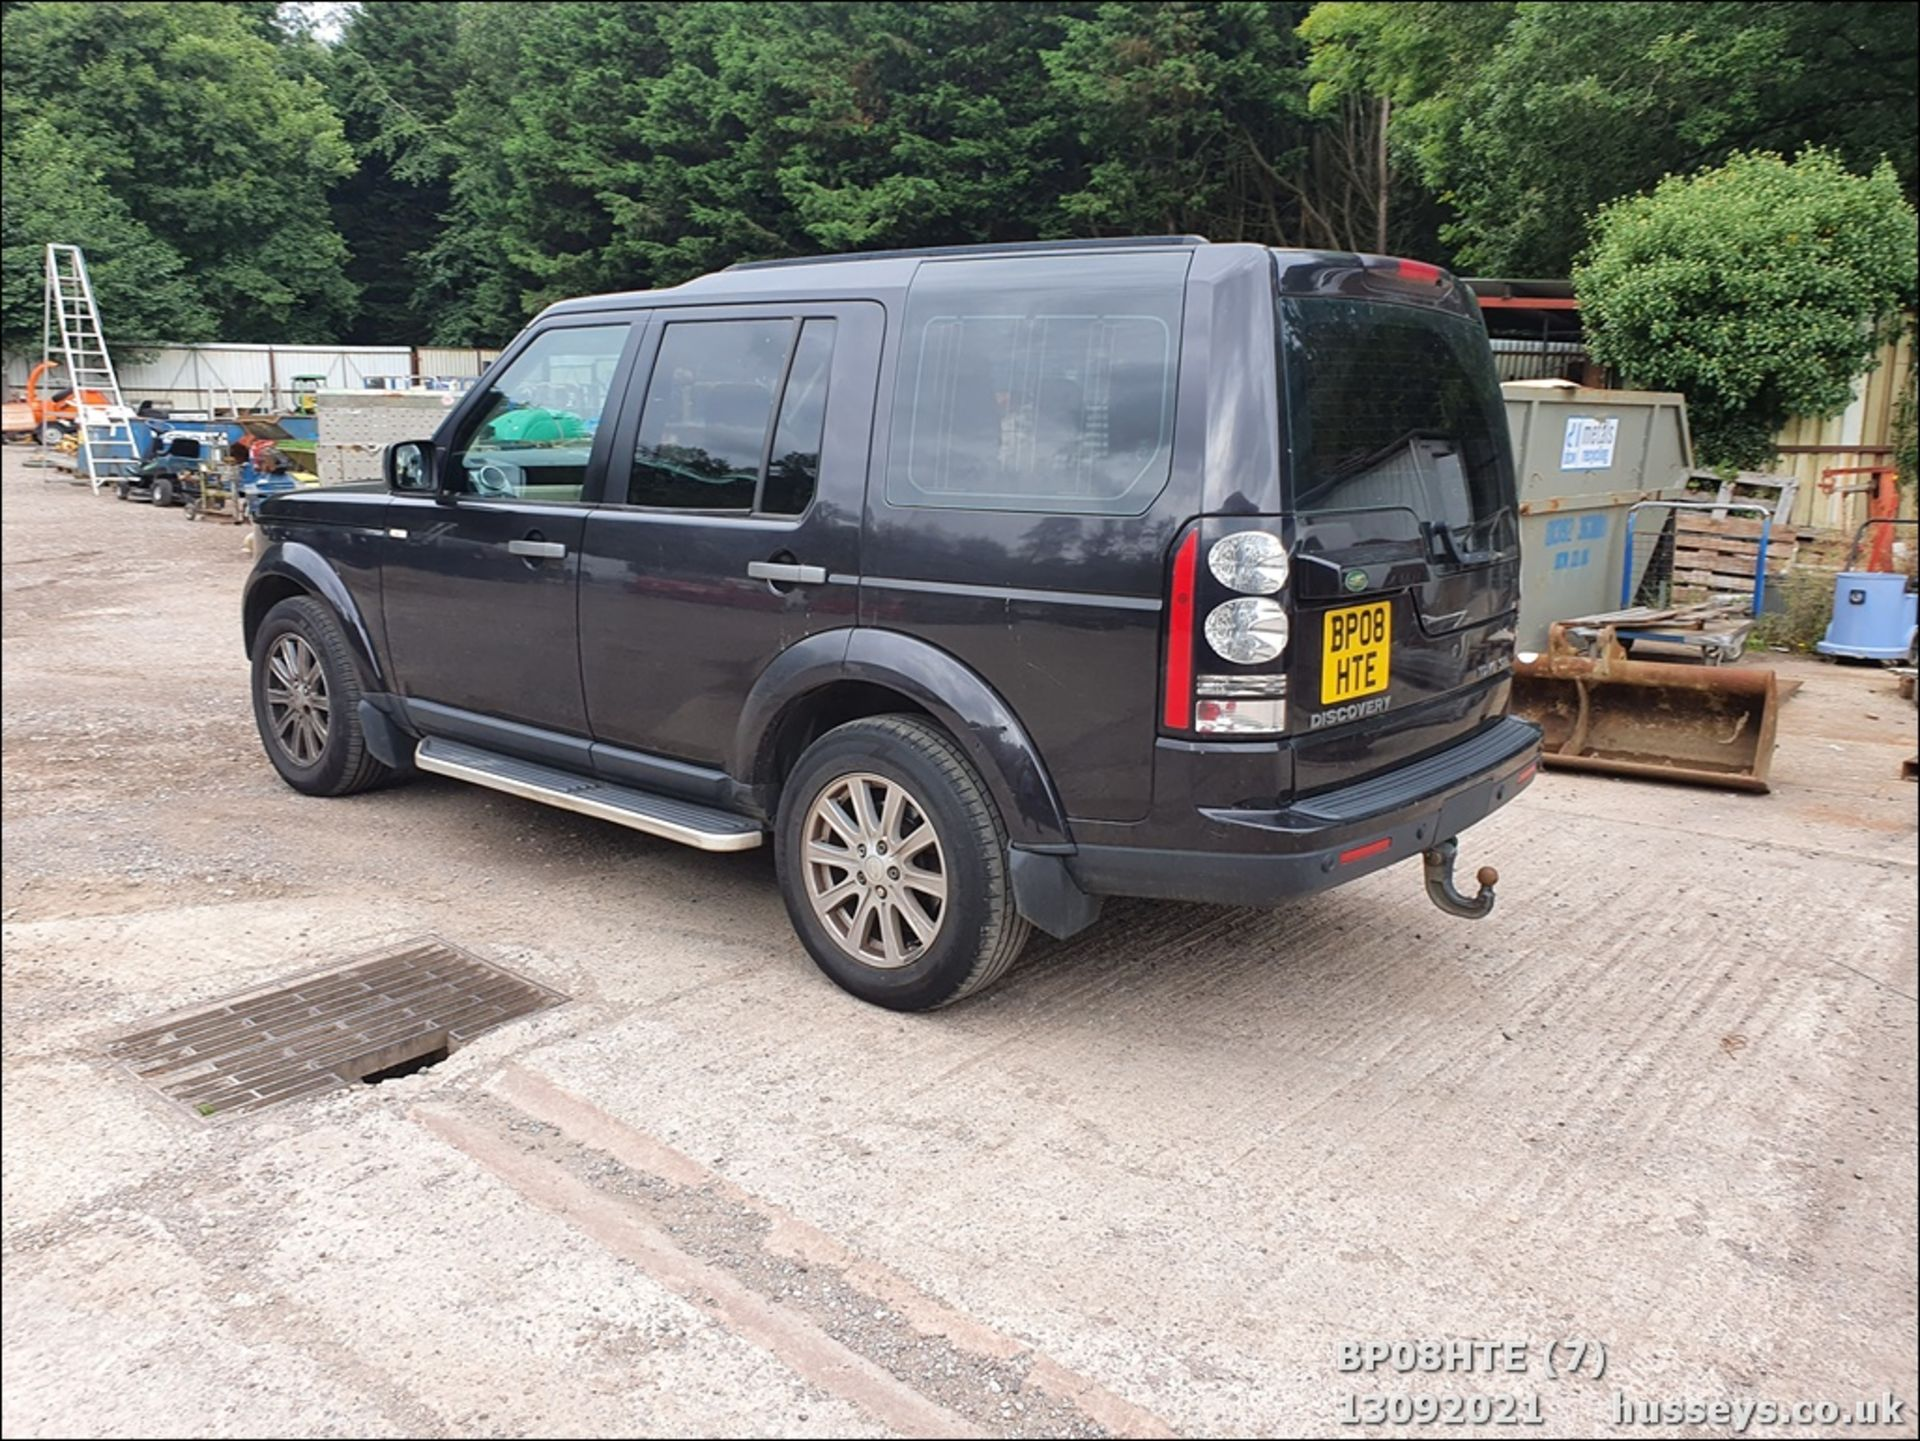 08/08 LAND ROVER DISCOVERY TDV6 SE A - 2720cc 5dr Estate (Brown, 190k) - Image 7 of 18